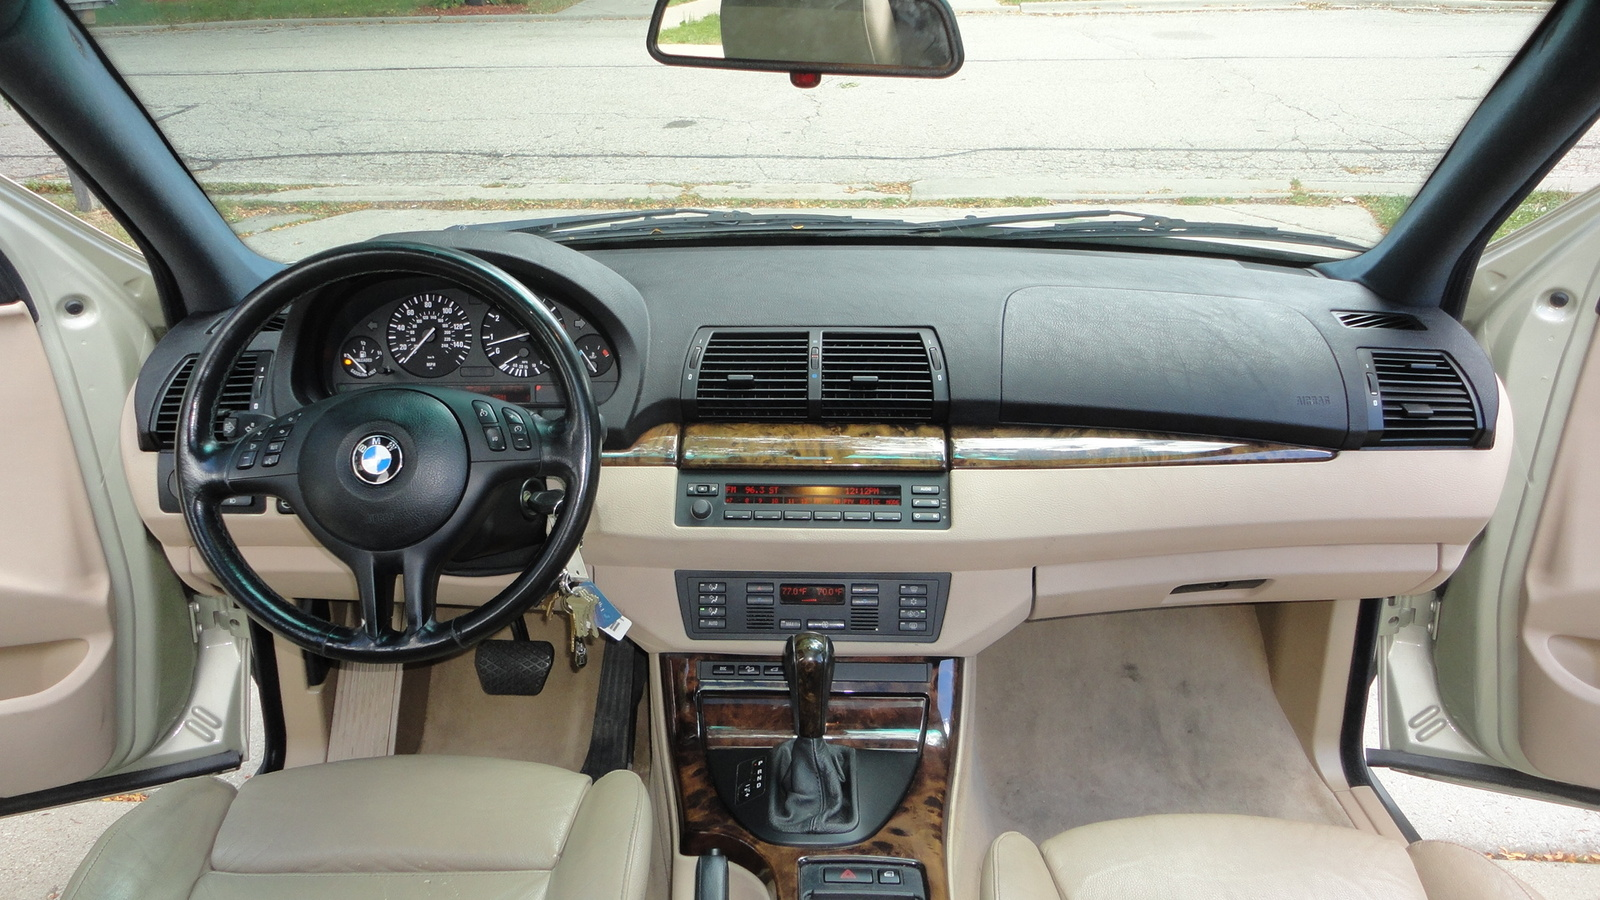 2003 BMW X5 - Interior Pictures - CarGurus